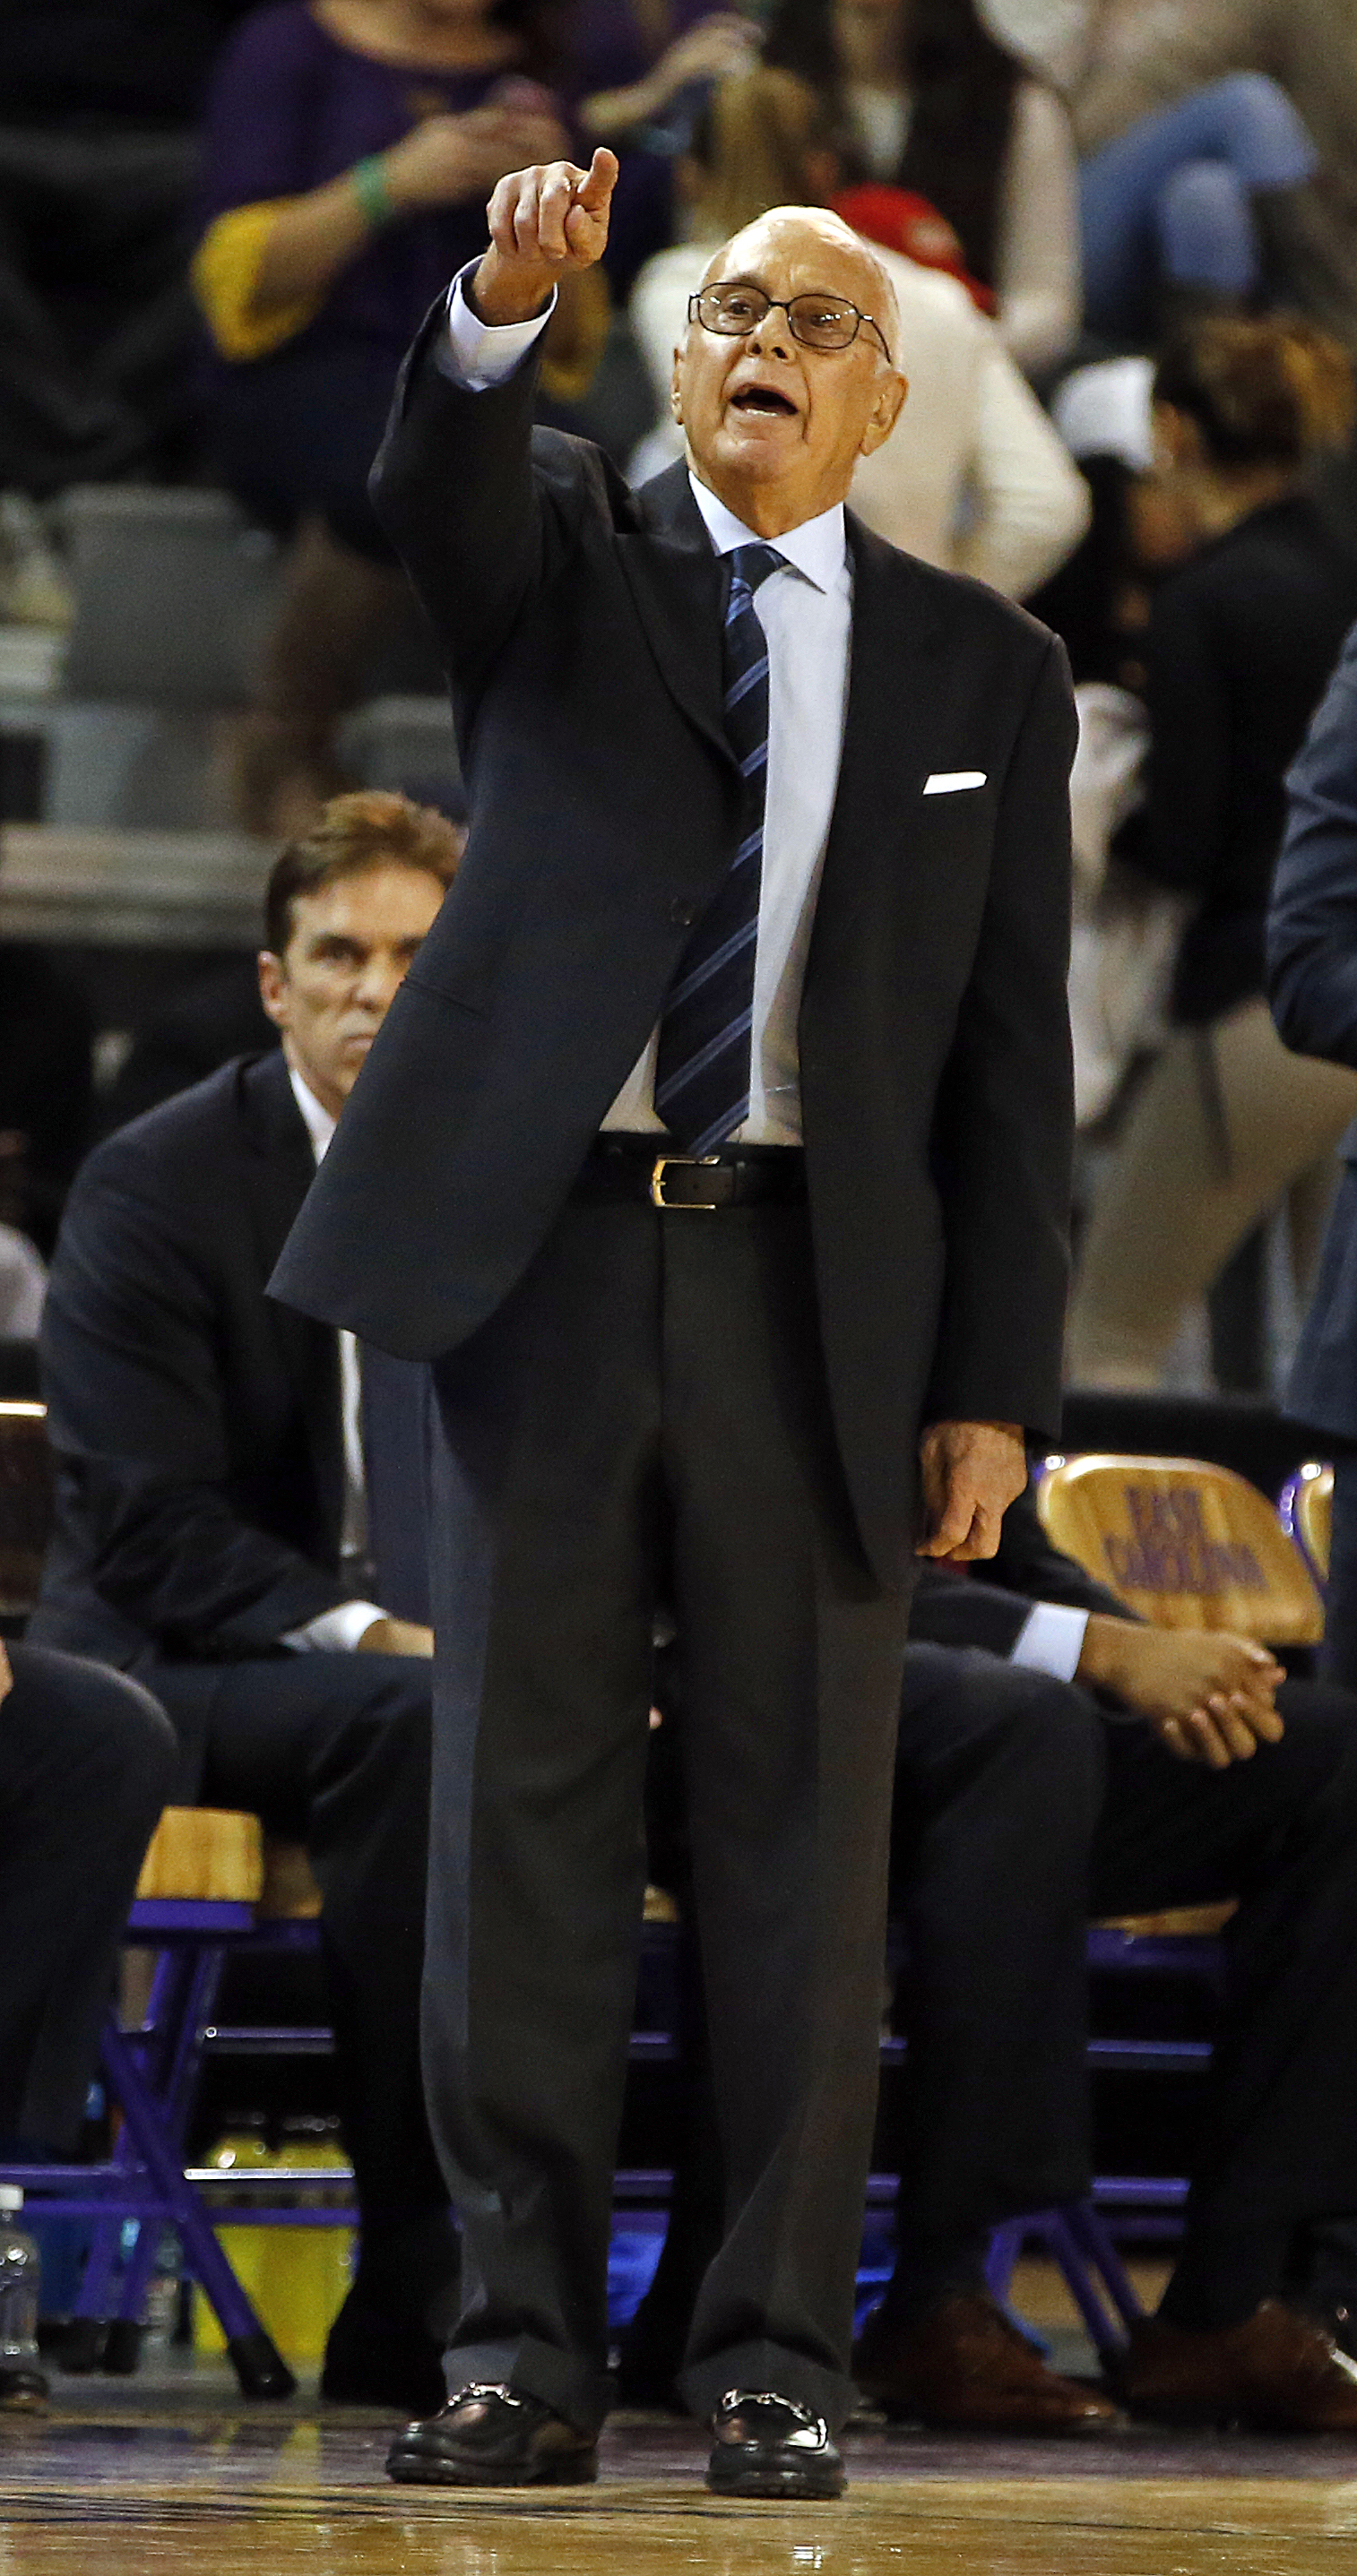 Southern Methodist head coach Larry Brown yells instructions to his team during the first half of an NCAA college basketball game against the East Carolina in Greenville, N.C., Wednesday, Jan. 13, 2016. (AP Photo/Karl B DeBlaker)